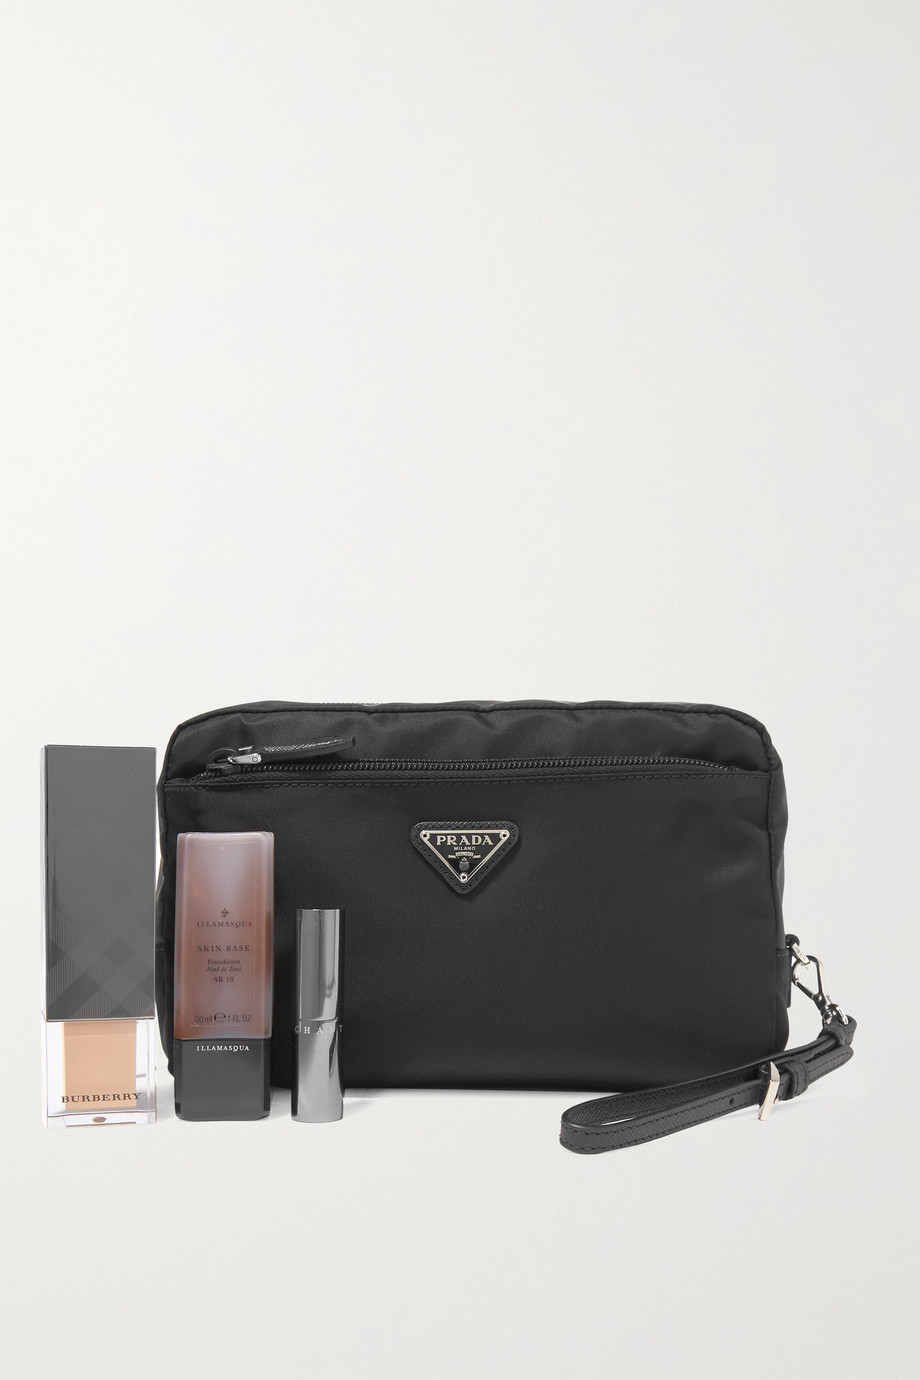 Prada Vela textured leather-trimmed nylon cosmetics case